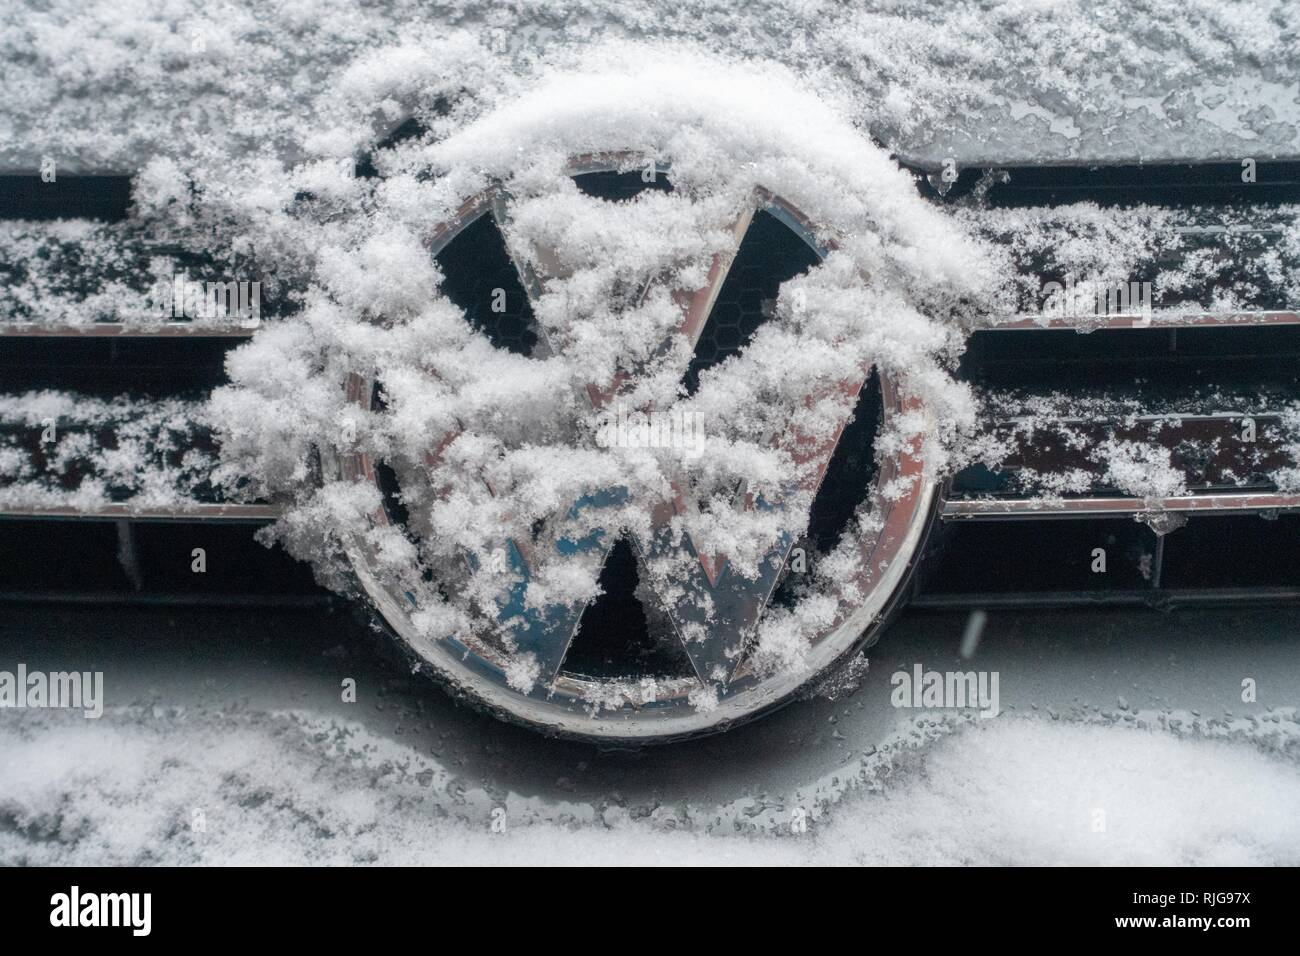 Snow-covered VW logo of VW Golf, Germany - Stock Image